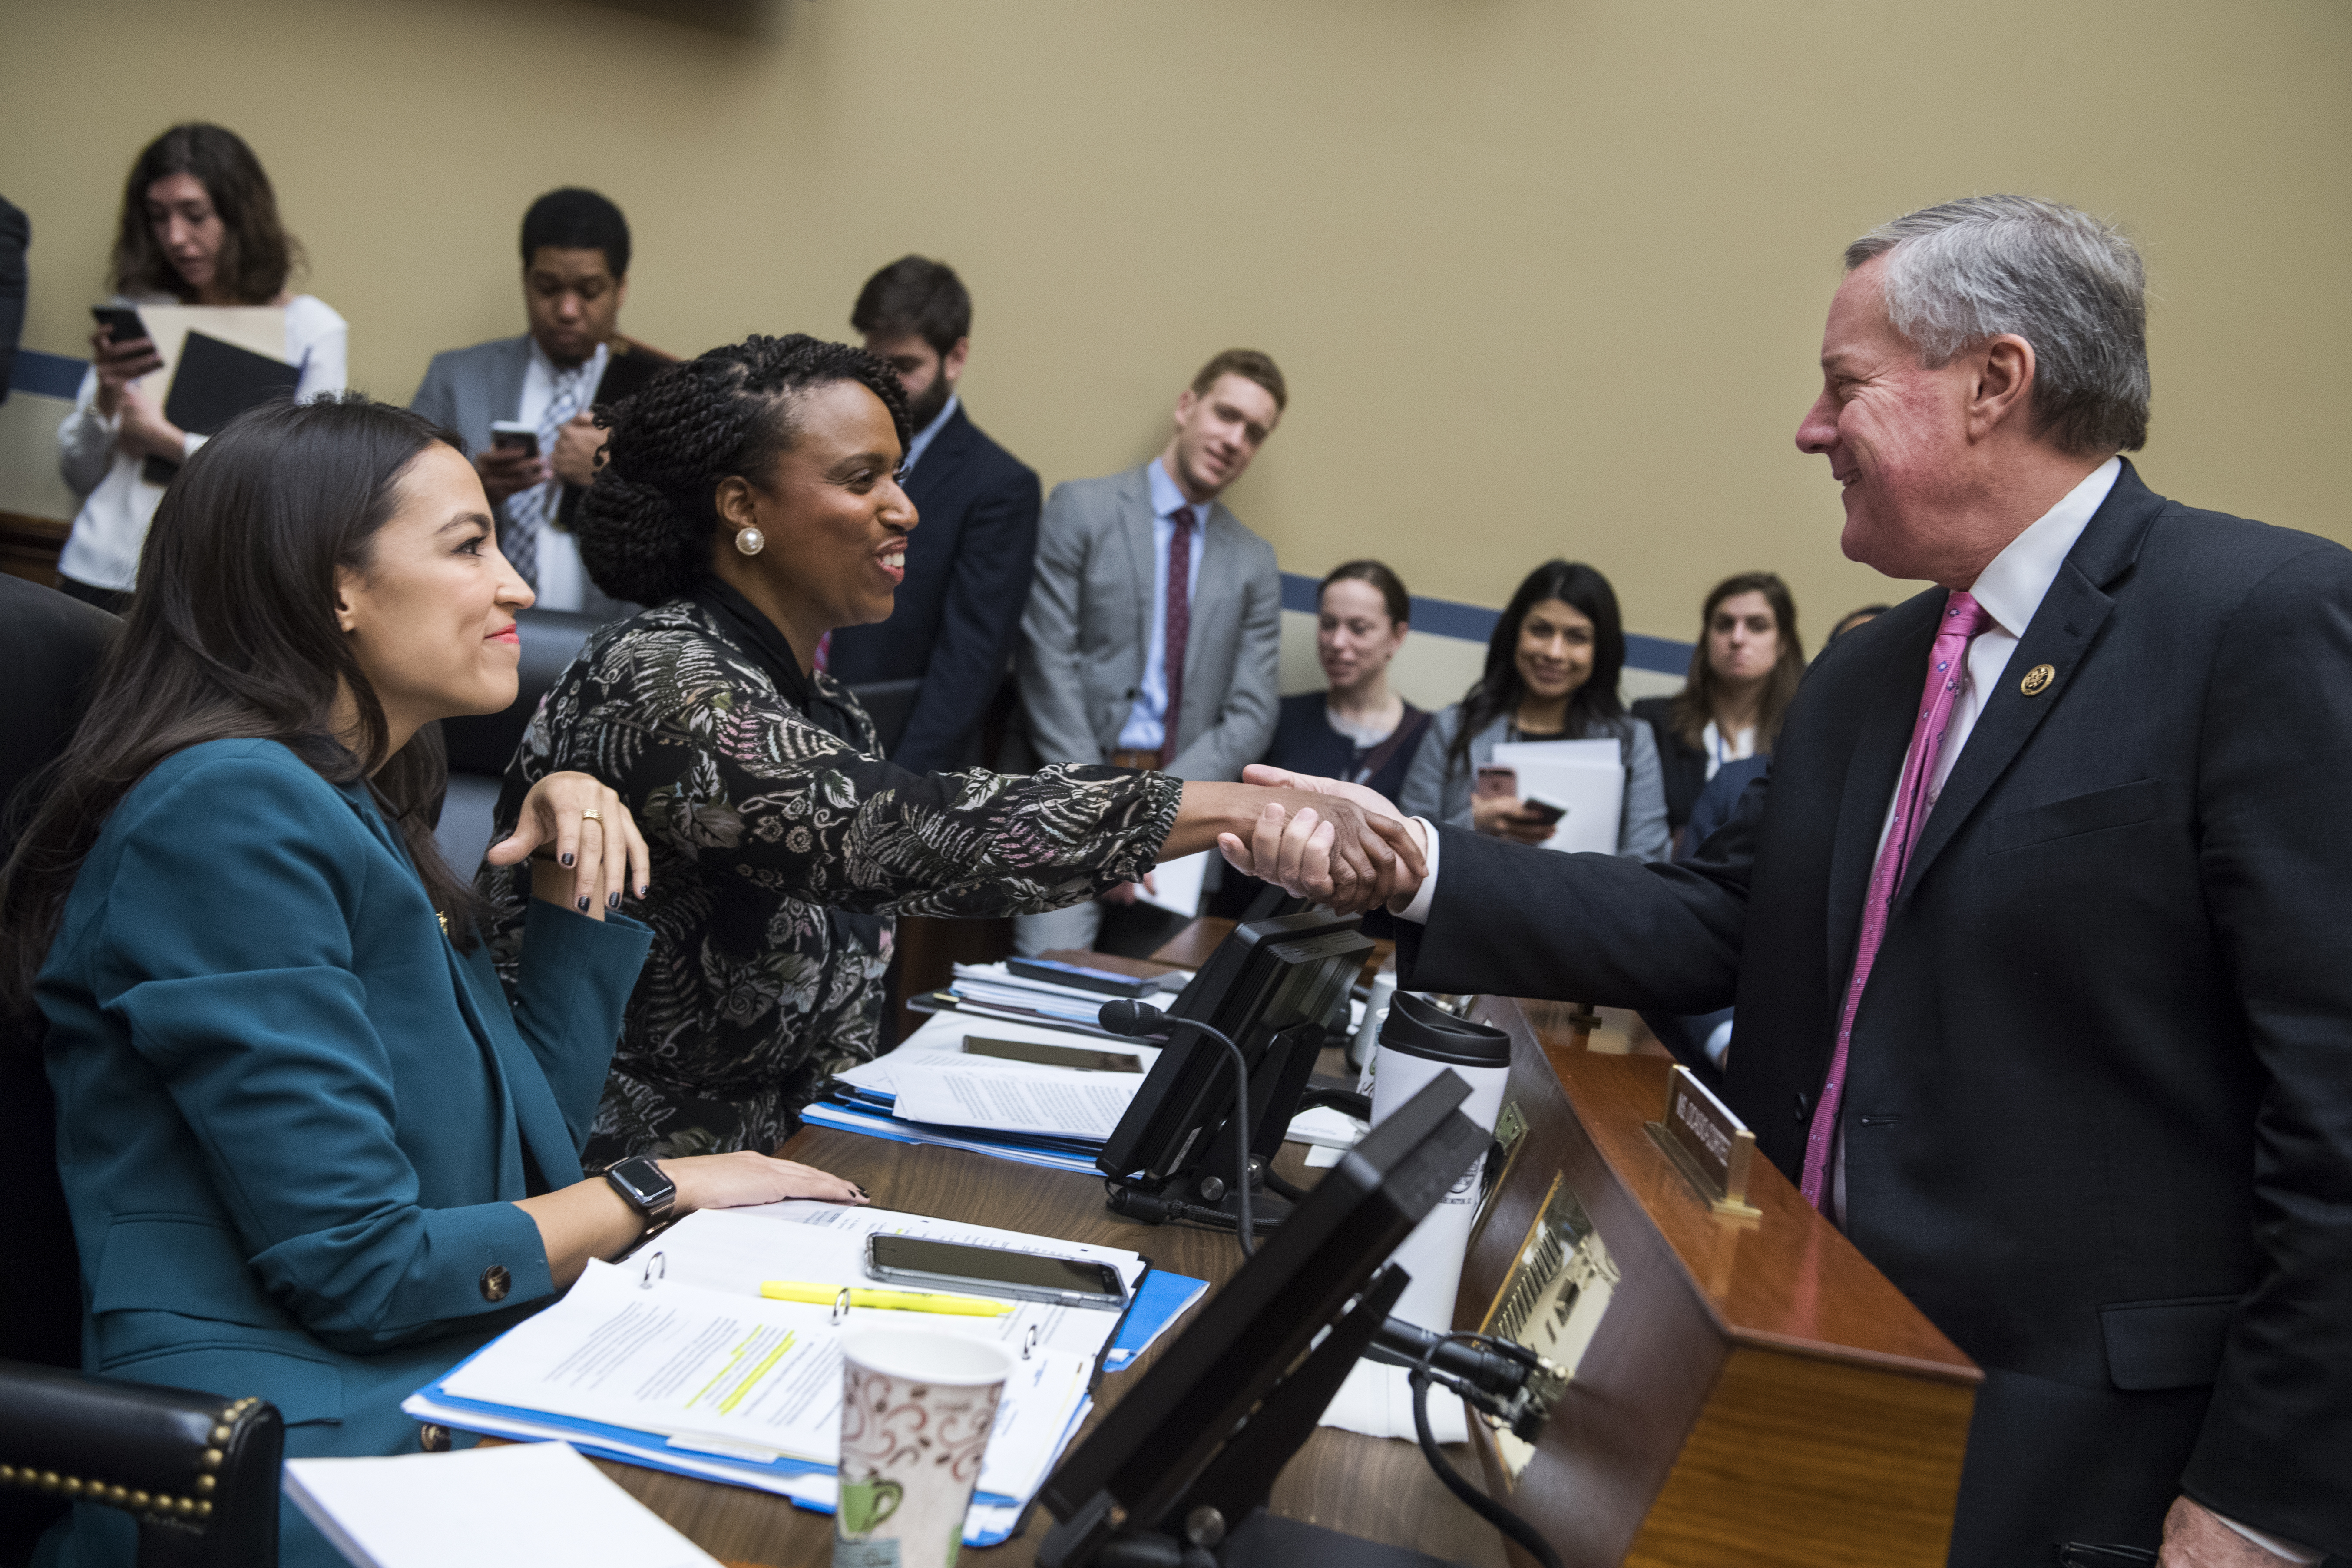 UNITED STATES - JANUARY 29: From left, Reps. Alexandria Ocasio-Cortez, D-N.Y., Ayanna Pressley, D-Mass., and Mark Meadows, R-N.C., talk during a House Oversight and Reform Committee business meeting in Rayburn Building on Tuesday, January 29, 2019. (Photo By Tom Williams/CQ Roll Call)